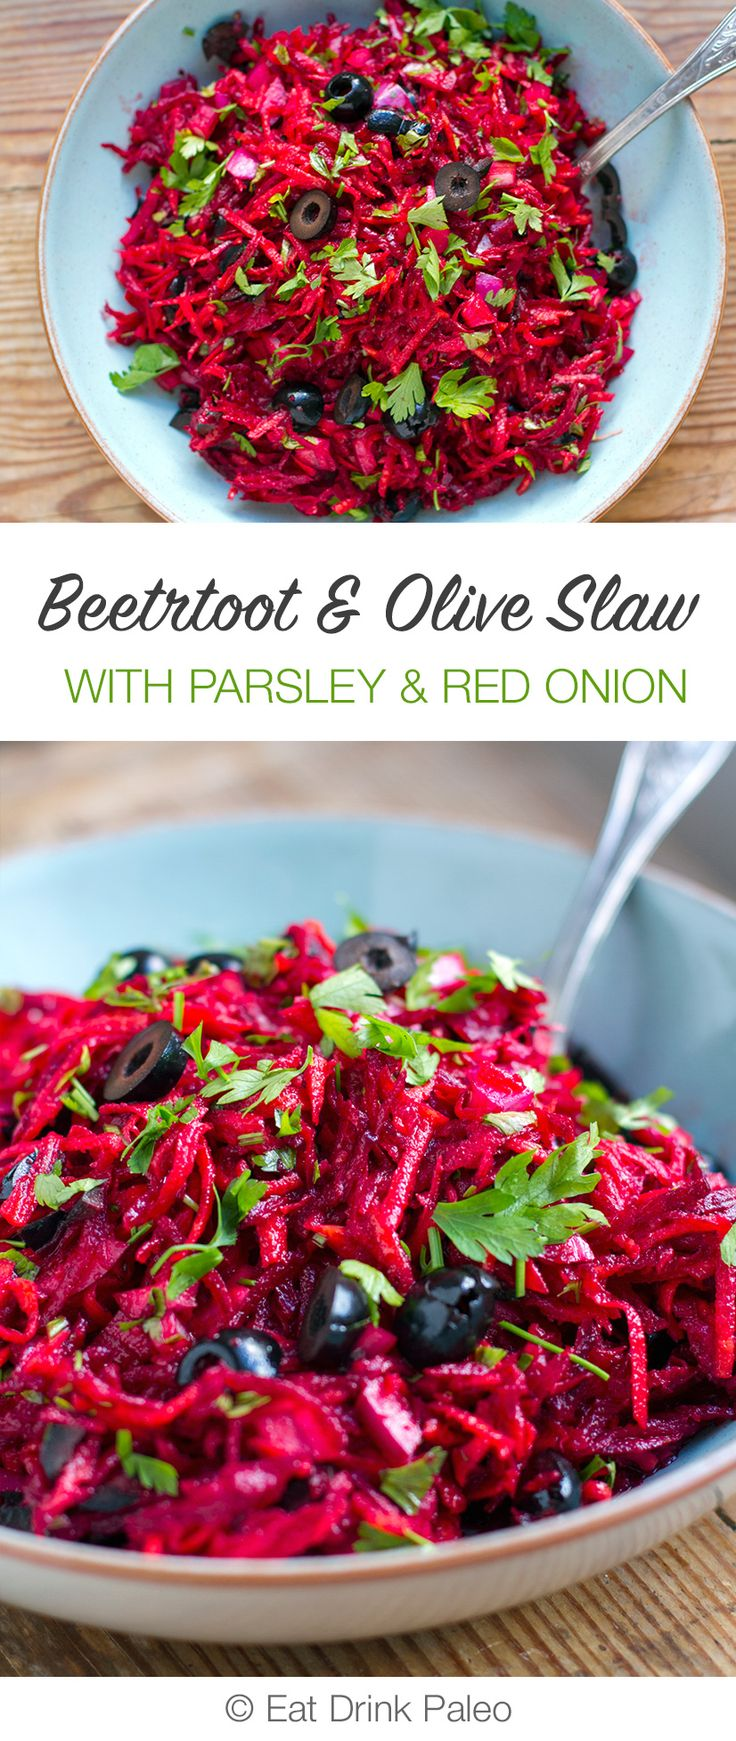 Beetroot & Olive Slaw With Parsley & Red Onions (Paleo, Whole30, Vegan)